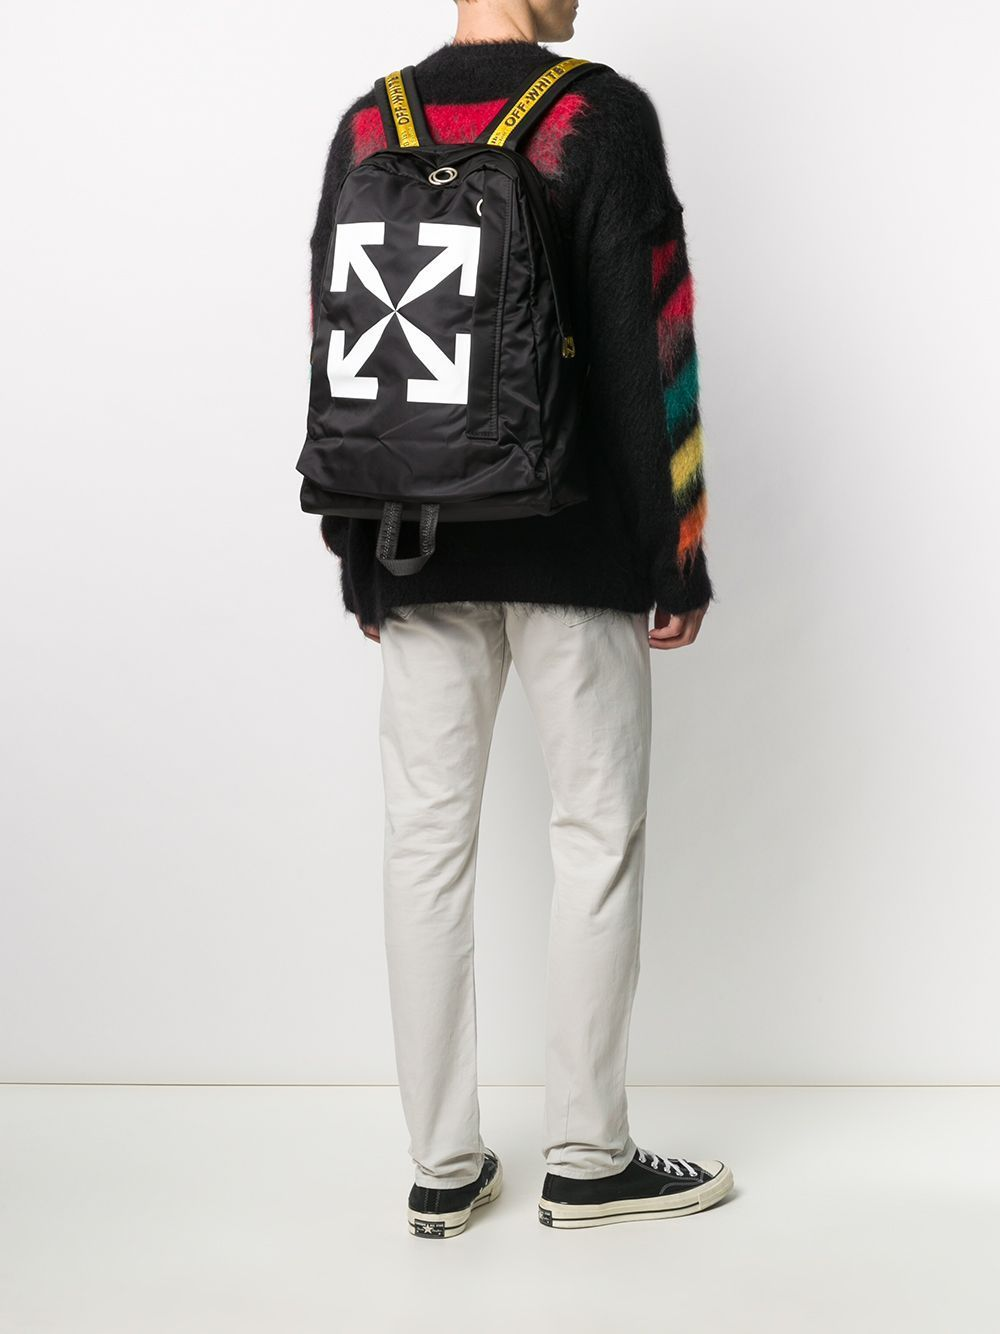 OFF-WHITE Arrow Backpack Black/White